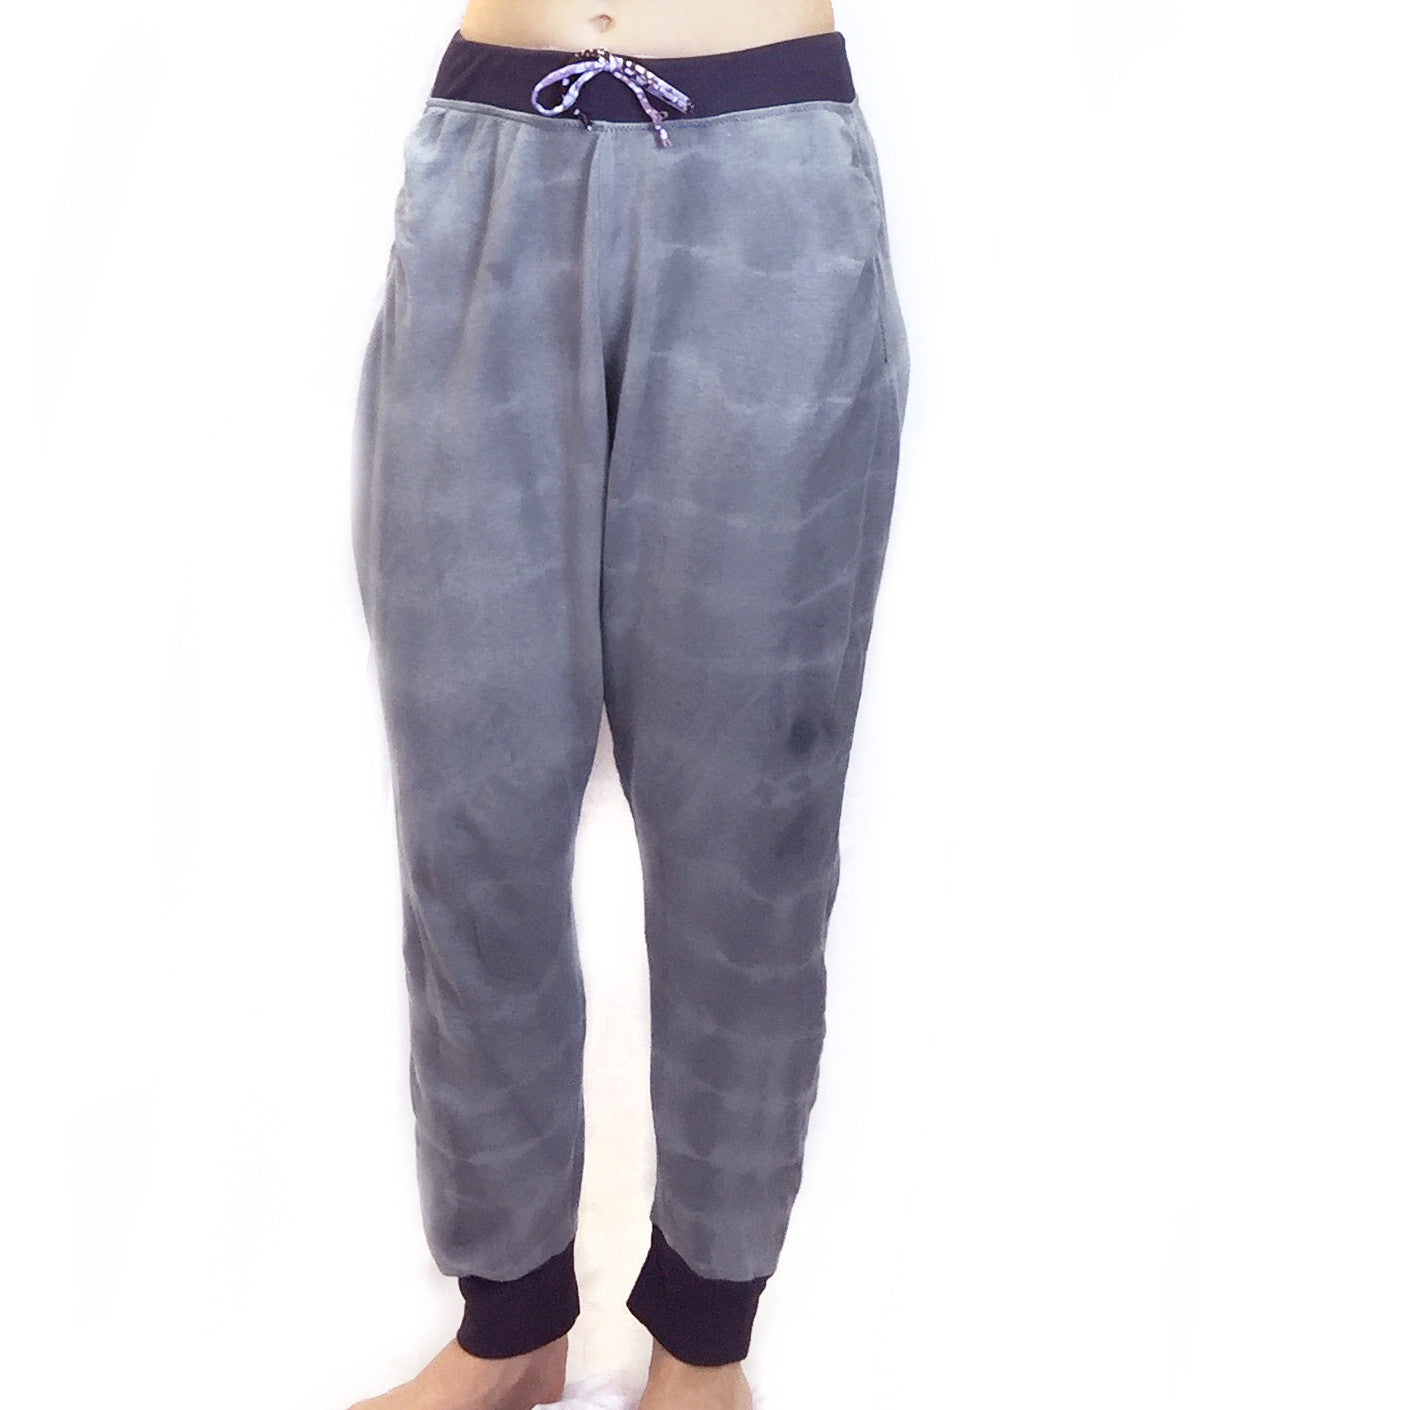 India - Sweatpants - Charcoal Tie-dye